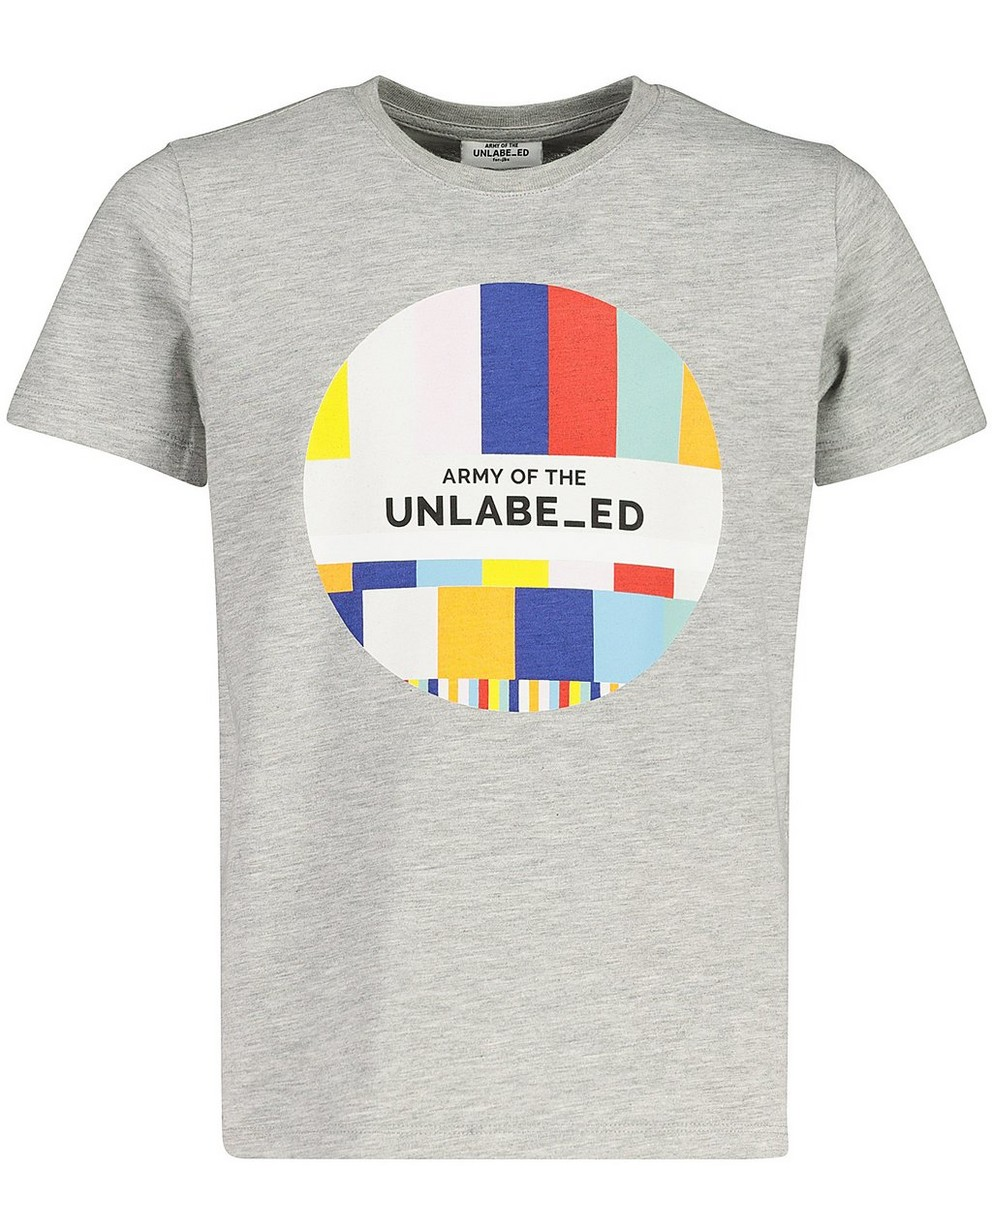 T-shirt Army of the Unlabeled - unisex - army